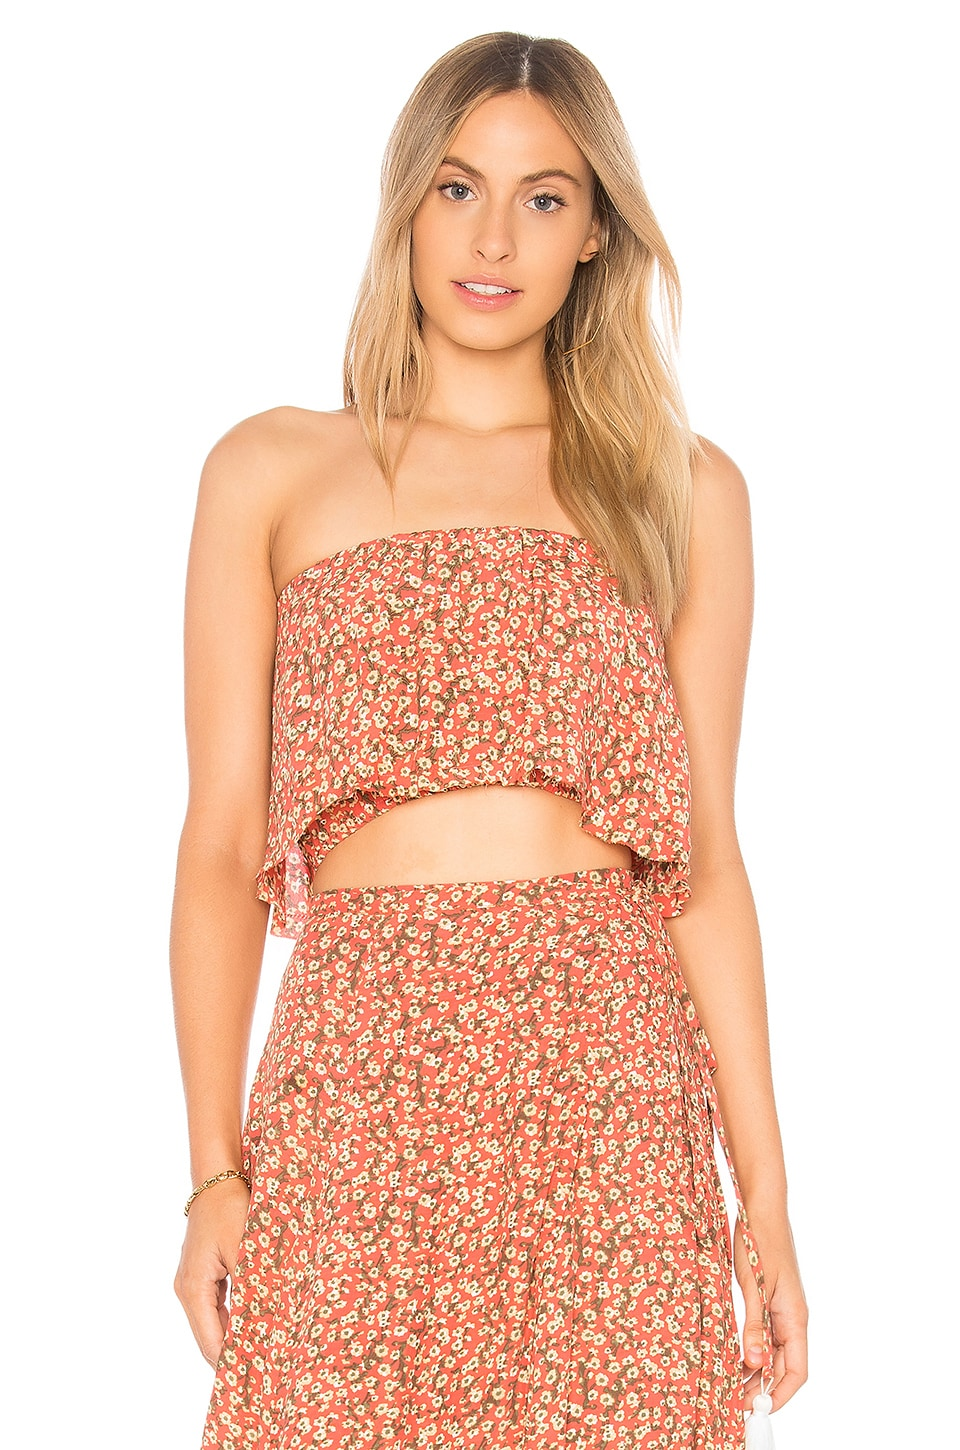 FAITHFULL THE BRAND Marlow Top in Blossom Village Print Vintage Pink